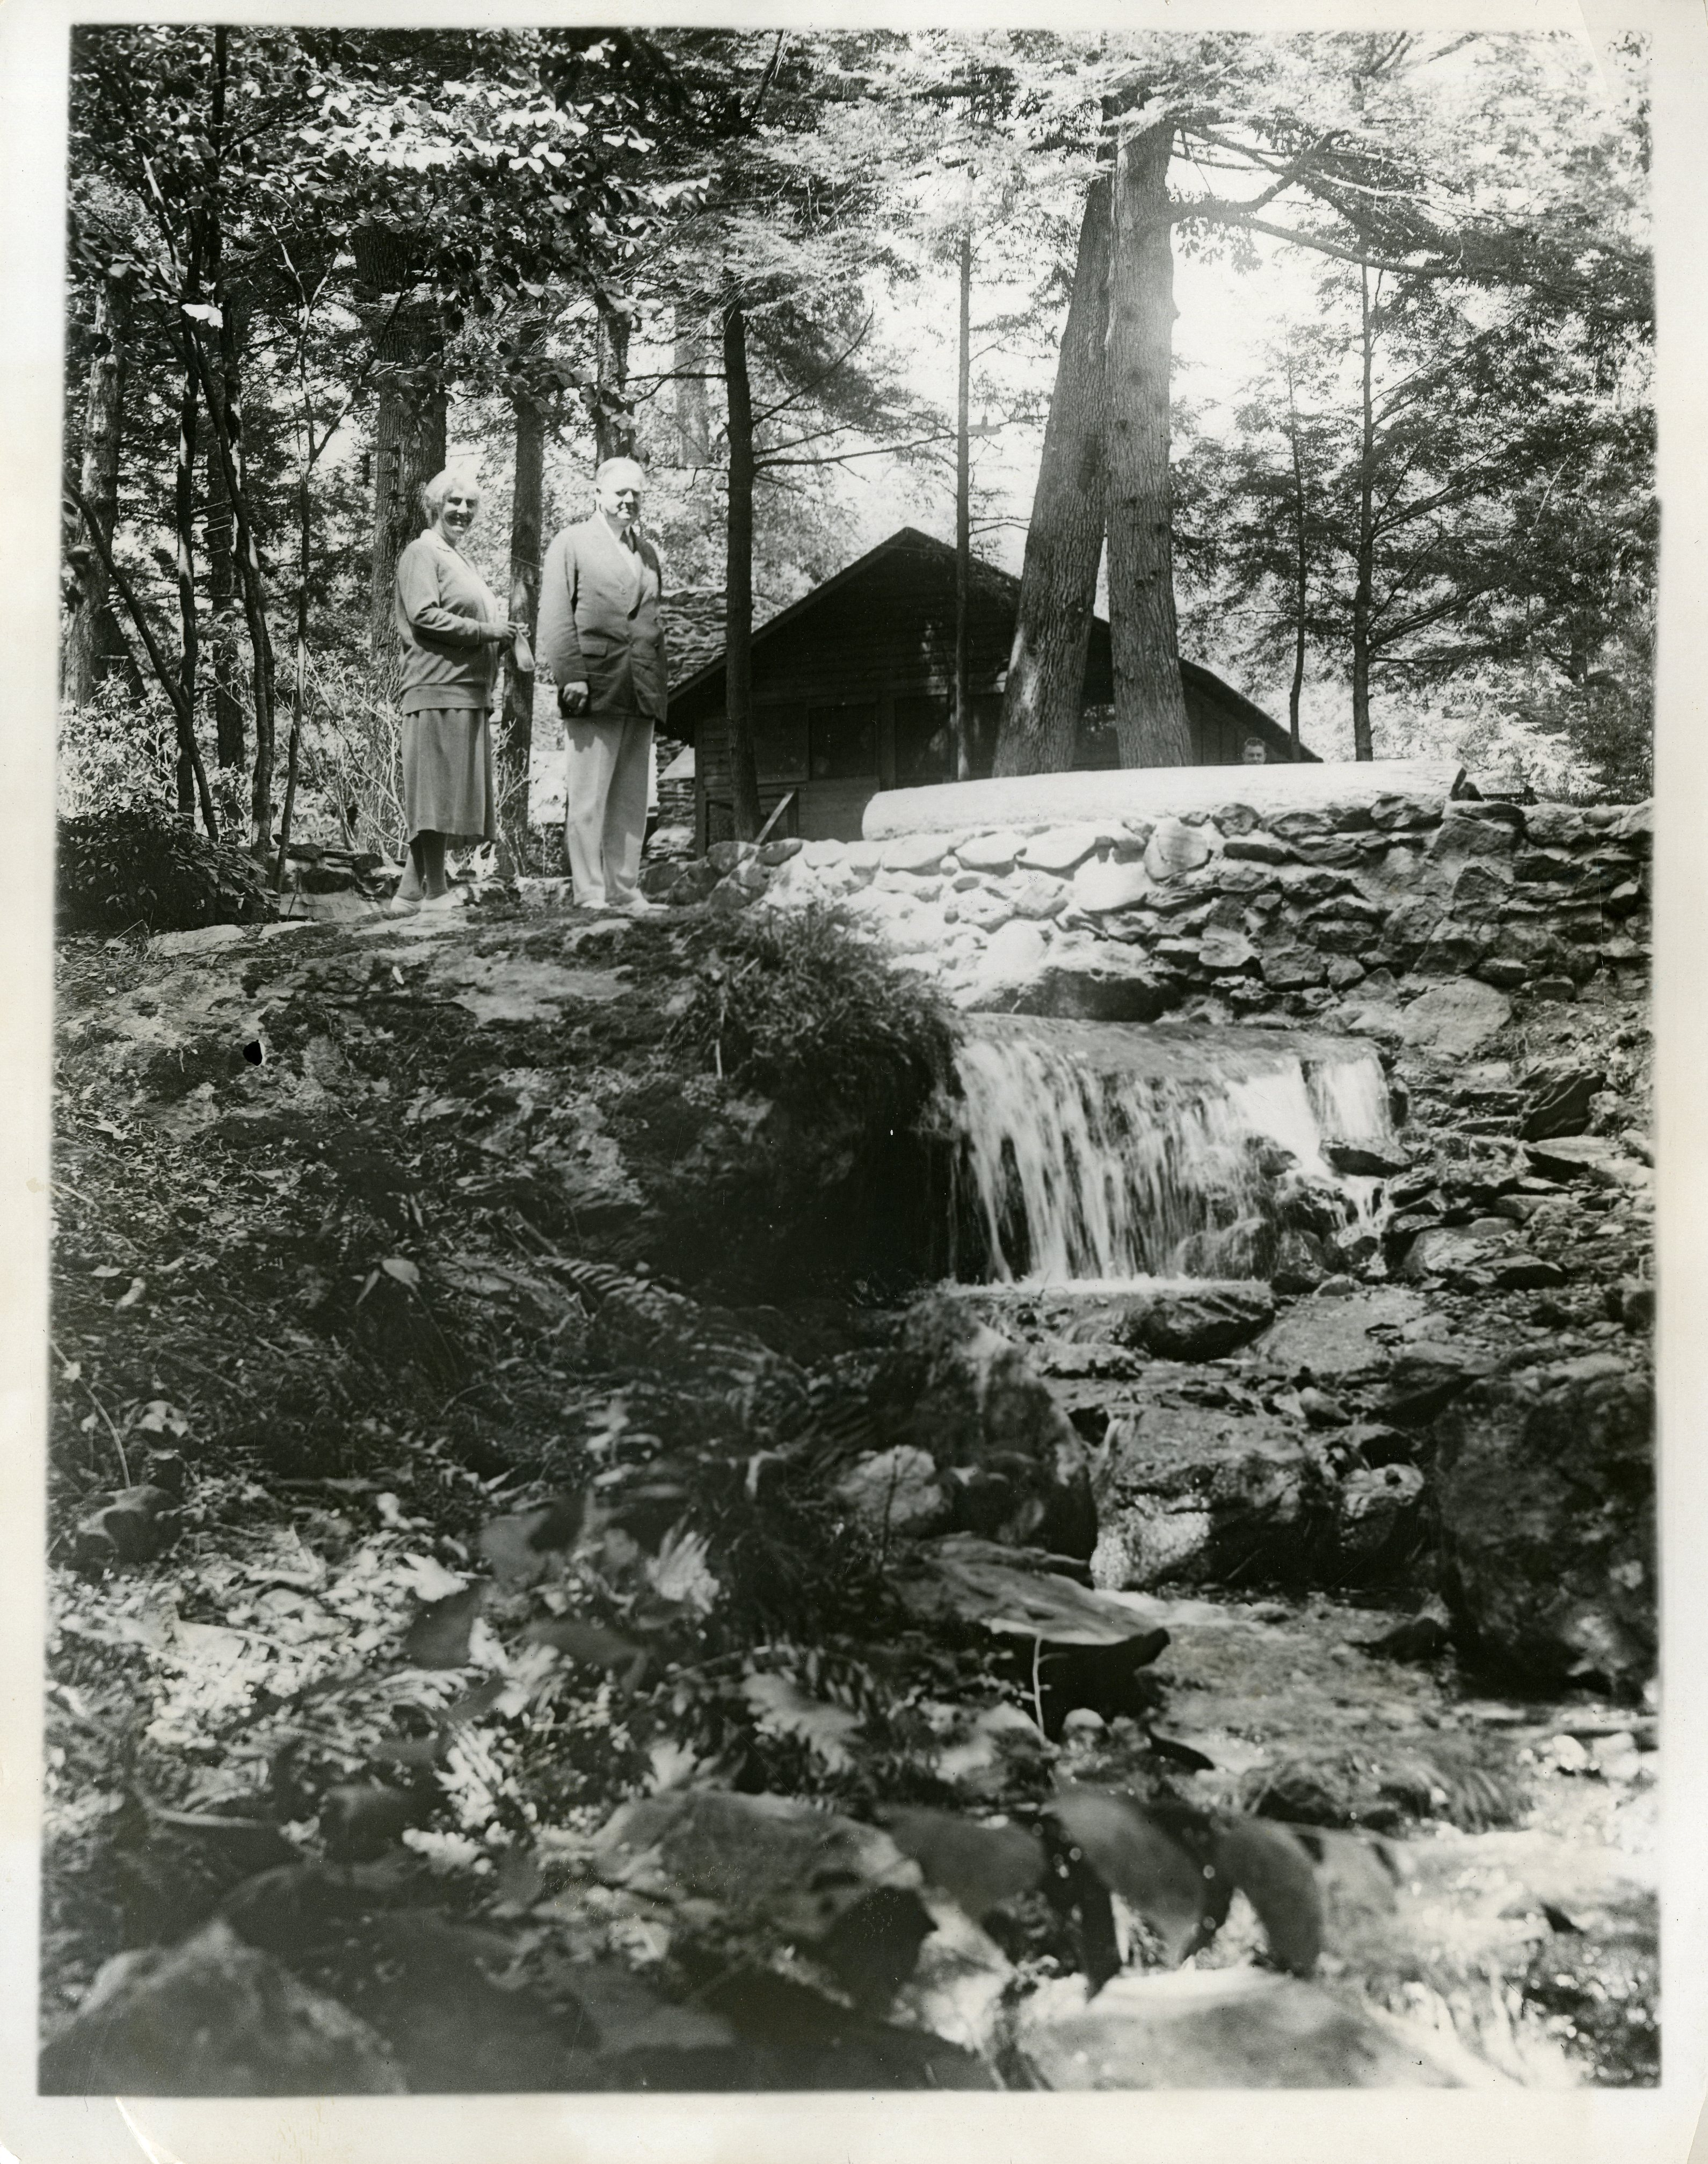 President and Mrs. Hoover visiting Camp Rapidan, the fishing lodge on the Rapidan River in Virginia. 08/02/1939